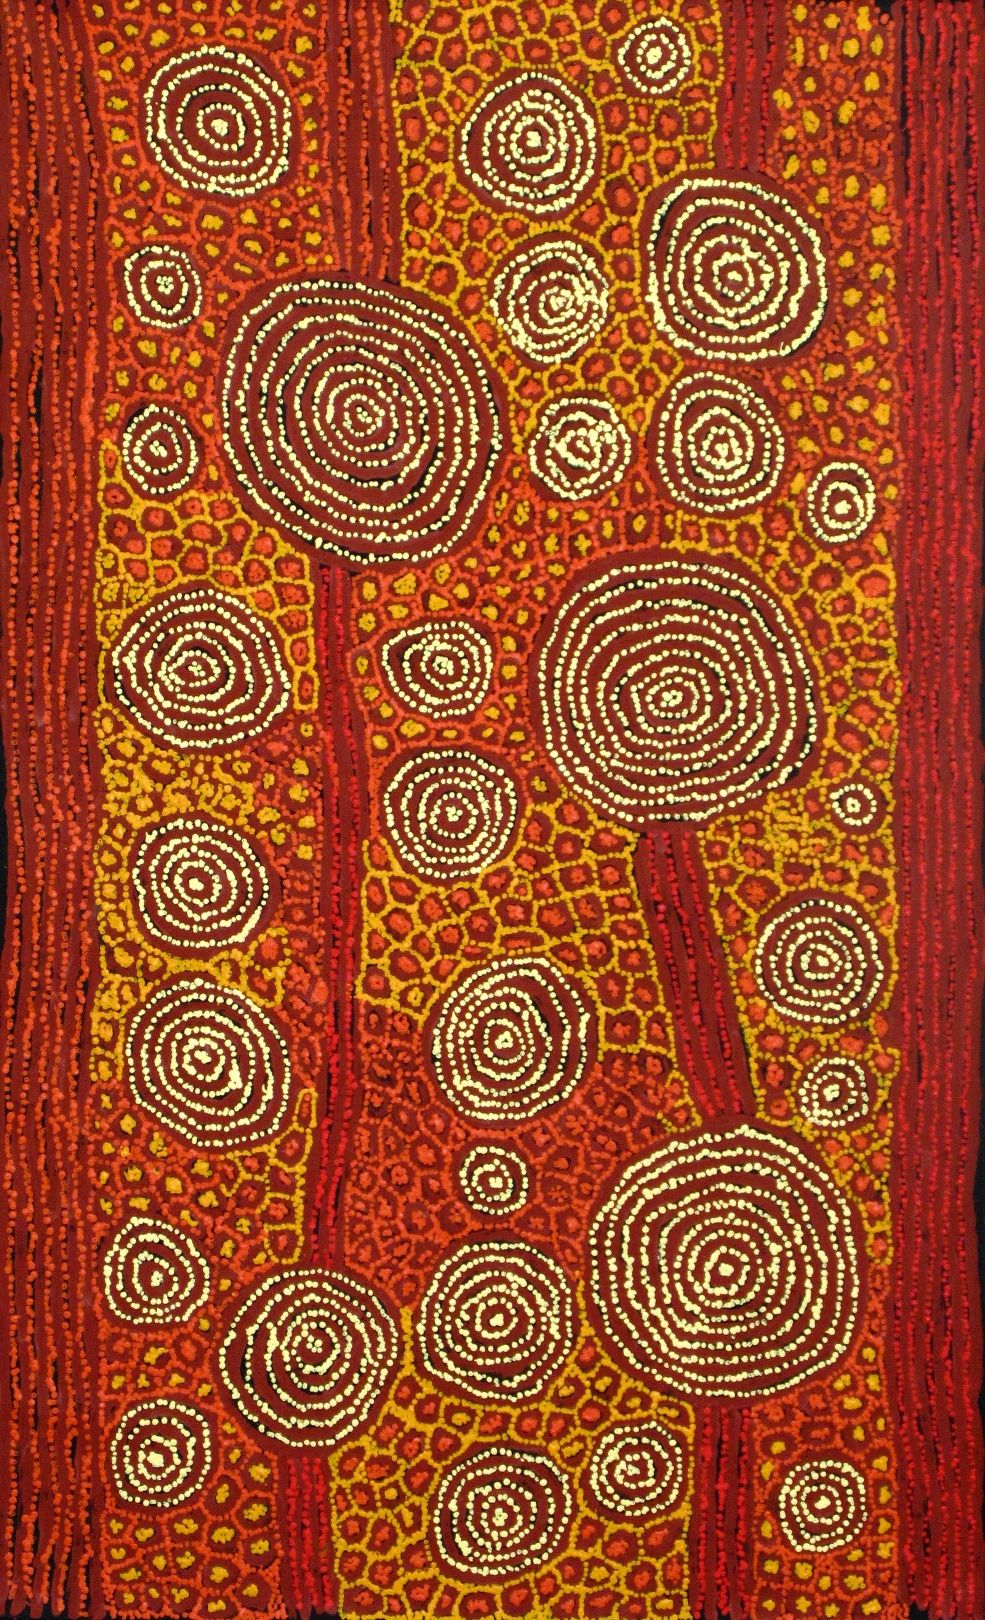 aboriginal dreamtime The 'aboriginal dreamtime' the 'aboriginal dreamtime' is that part of aboriginal culture which explains the origins and culture of the land and its people.